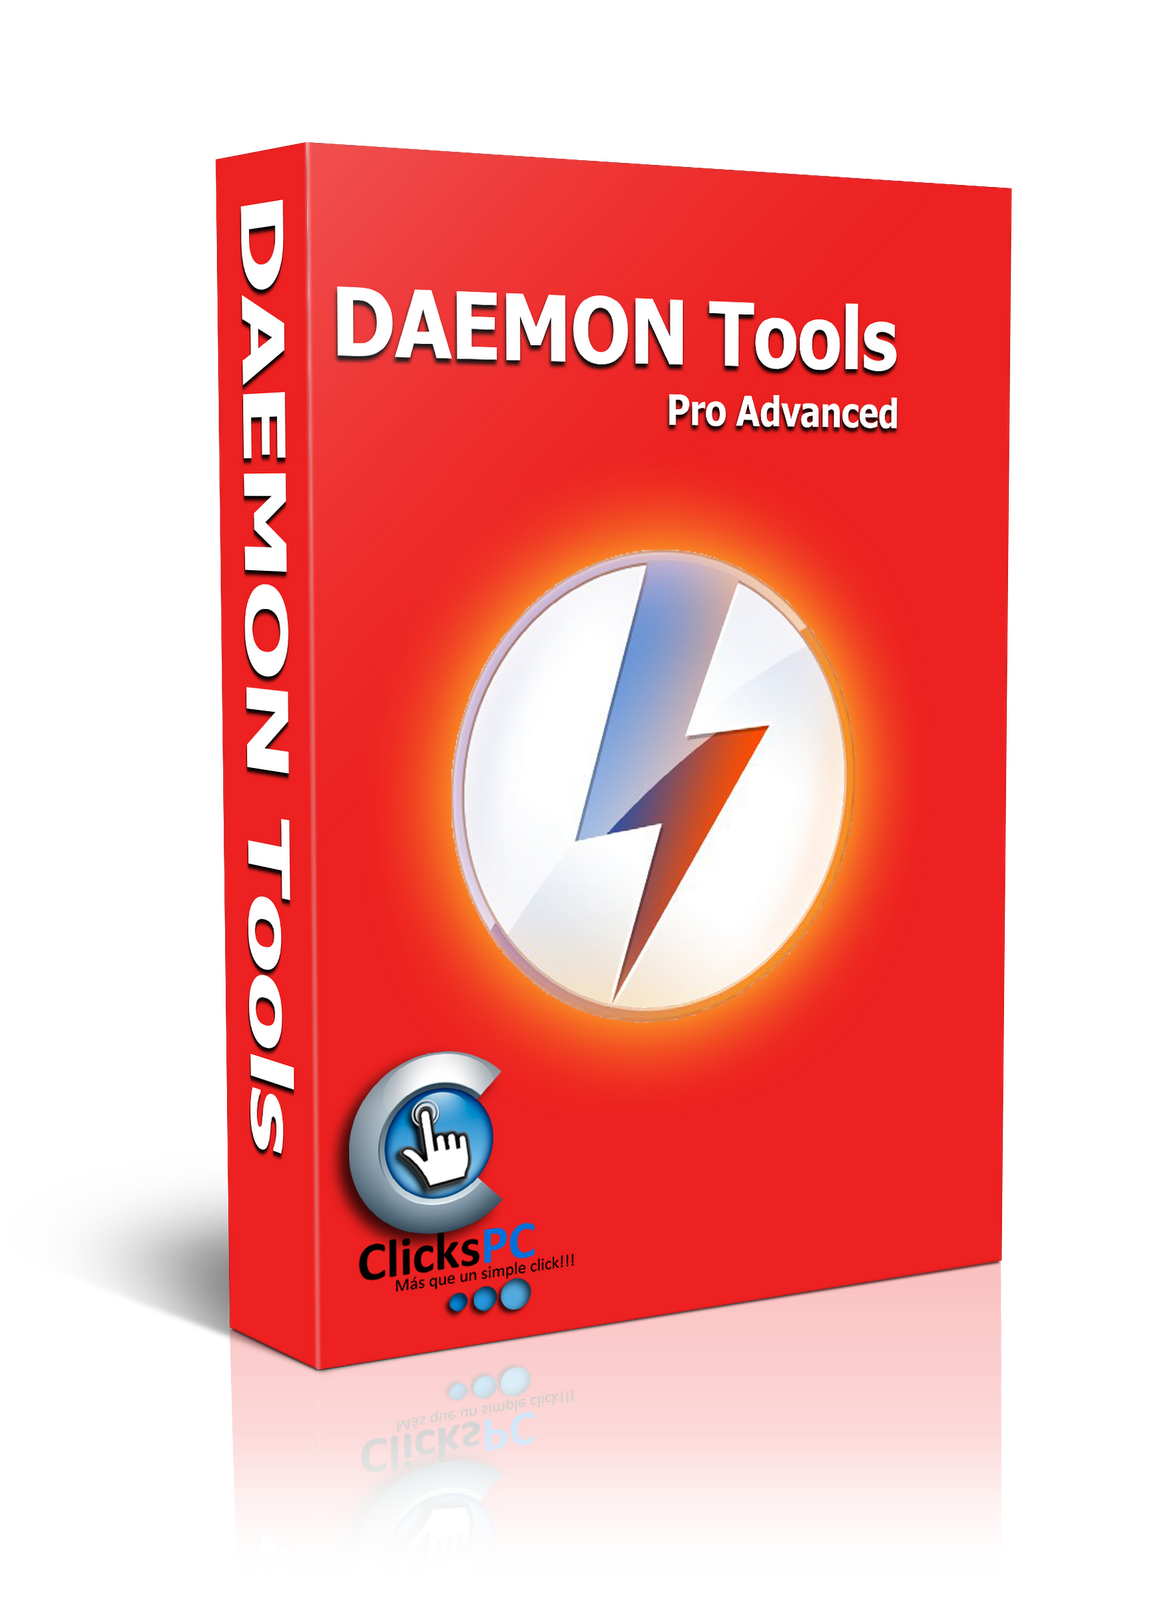 Daemon tools pro advanced v5 2 0 0348 crack prdhbd